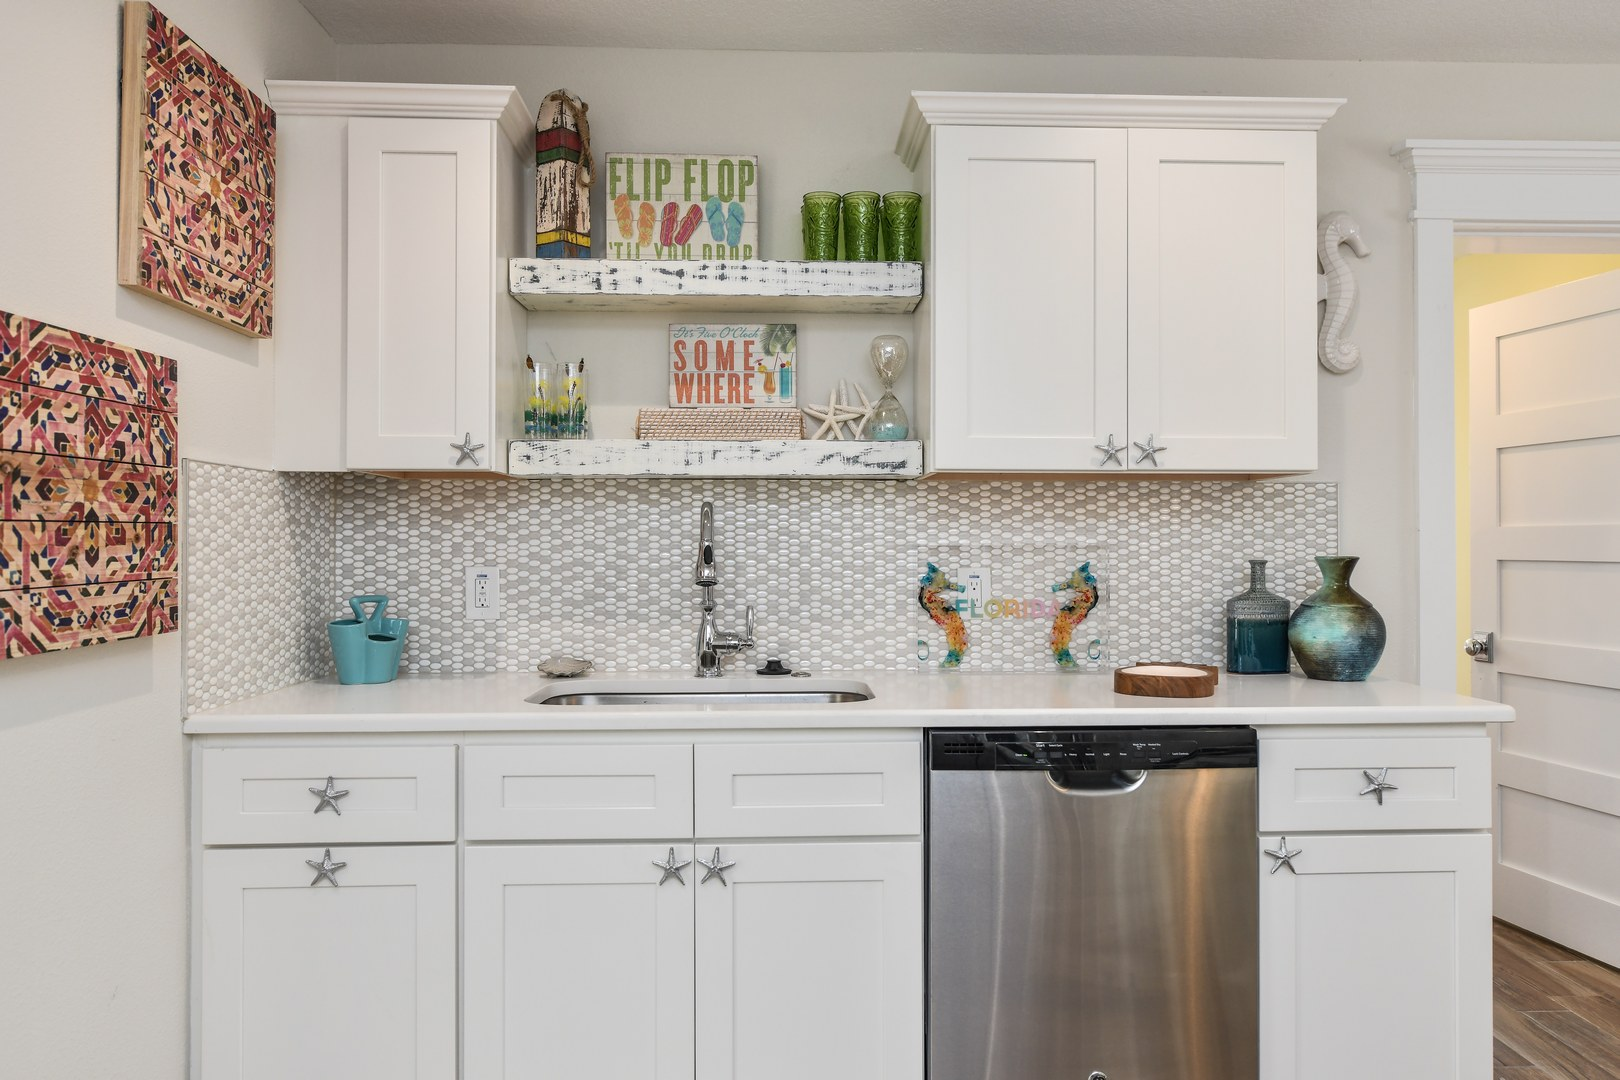 Kitchen - Sink, Dishwasher, Cabinets with beautiful decor